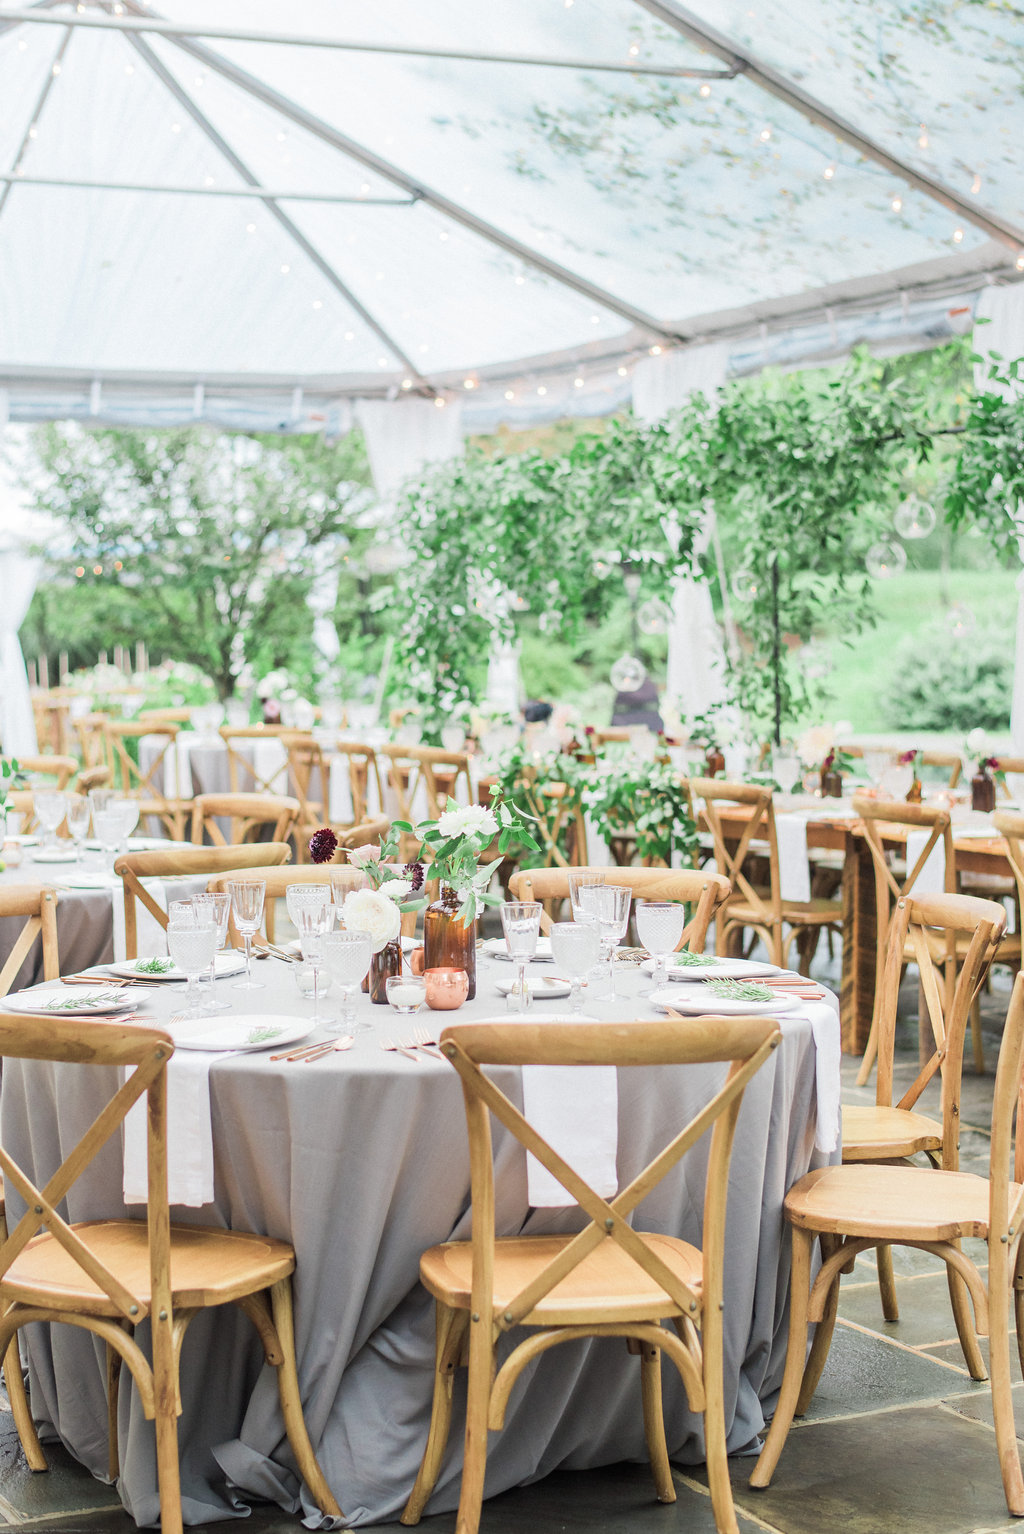 Virginia Countryside Fall Wedding by East Made Event Company fine art destination wedding planner and Julie Paisley Photography as featured on Style Me Pretty16 2.jpg